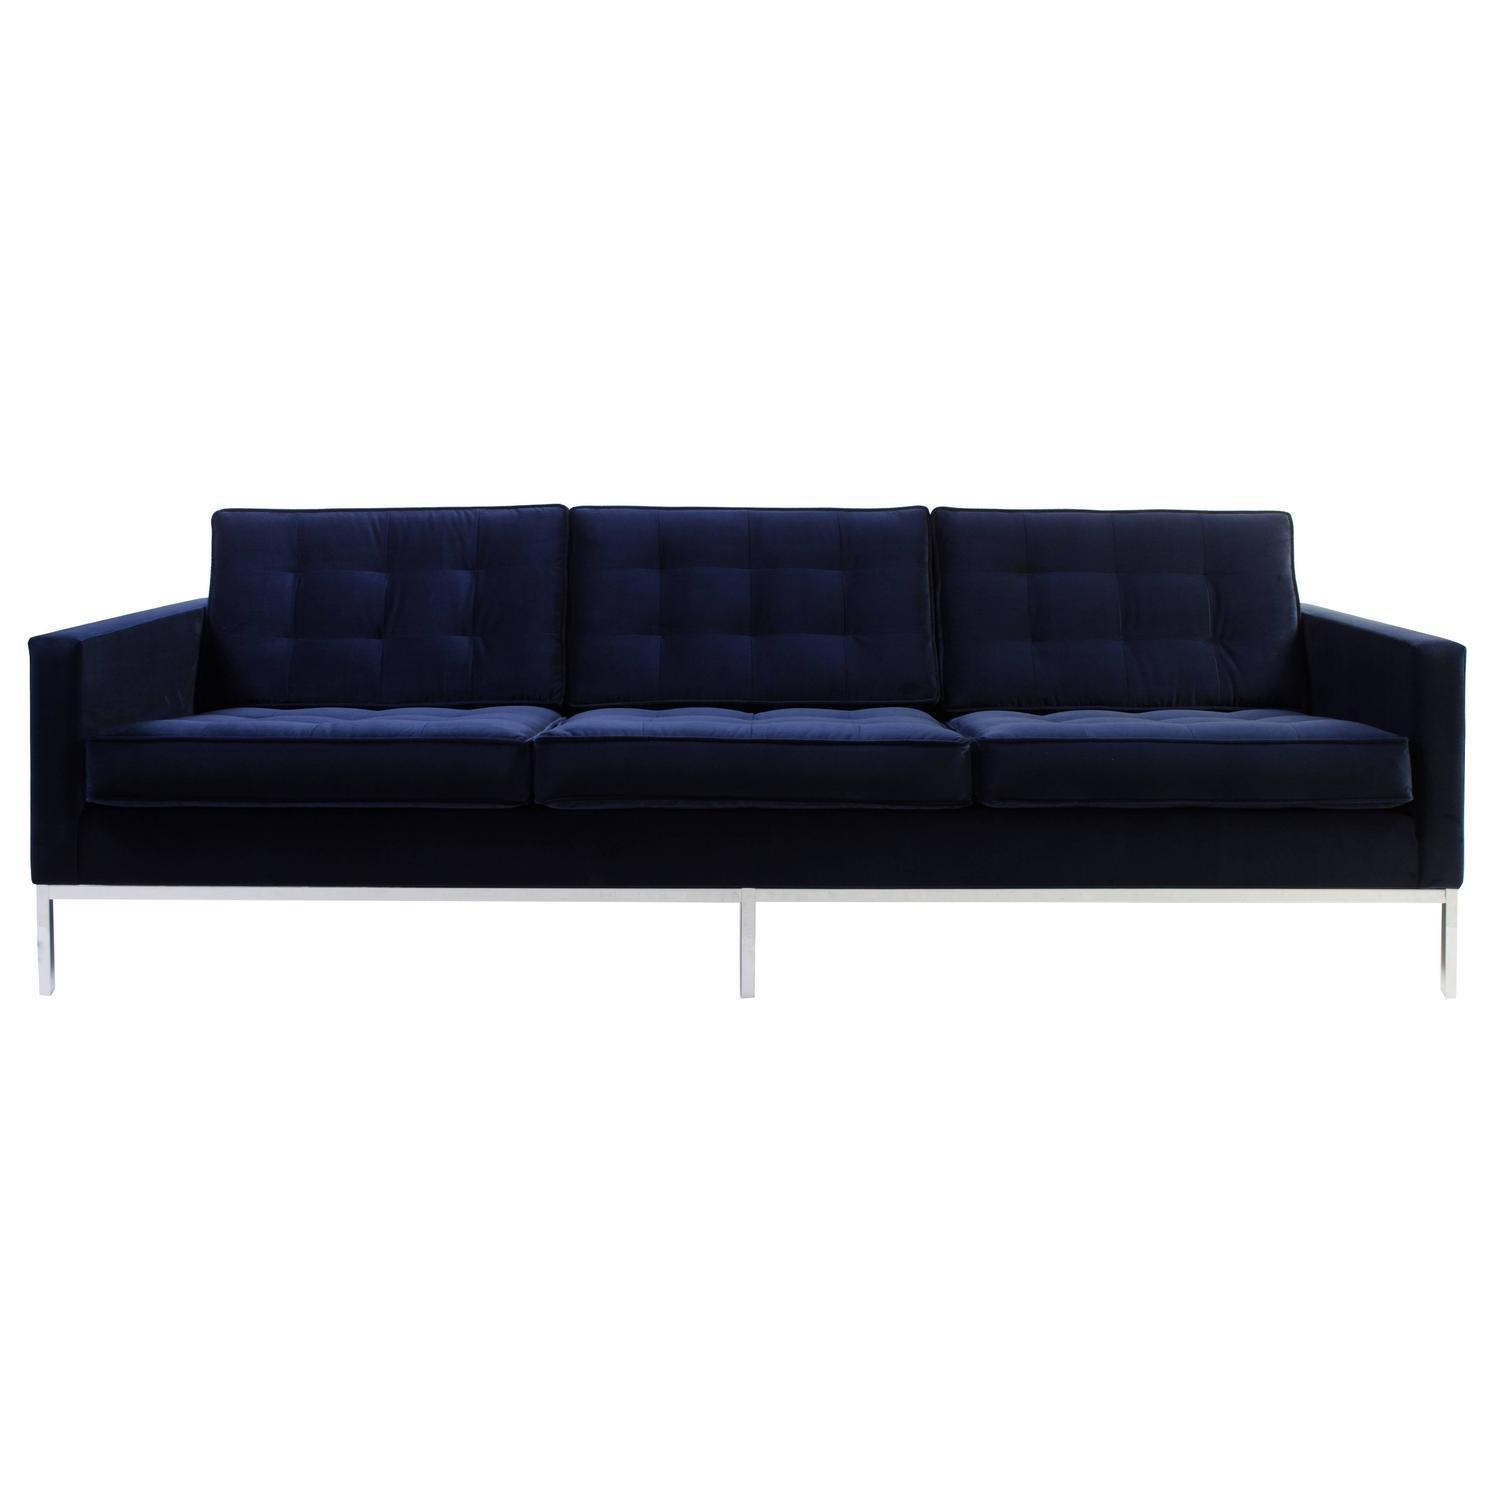 Florence Knoll Sofa In Navy Velvet For Sale At 1Stdibs Inside Knoll Sofas (View 3 of 20)